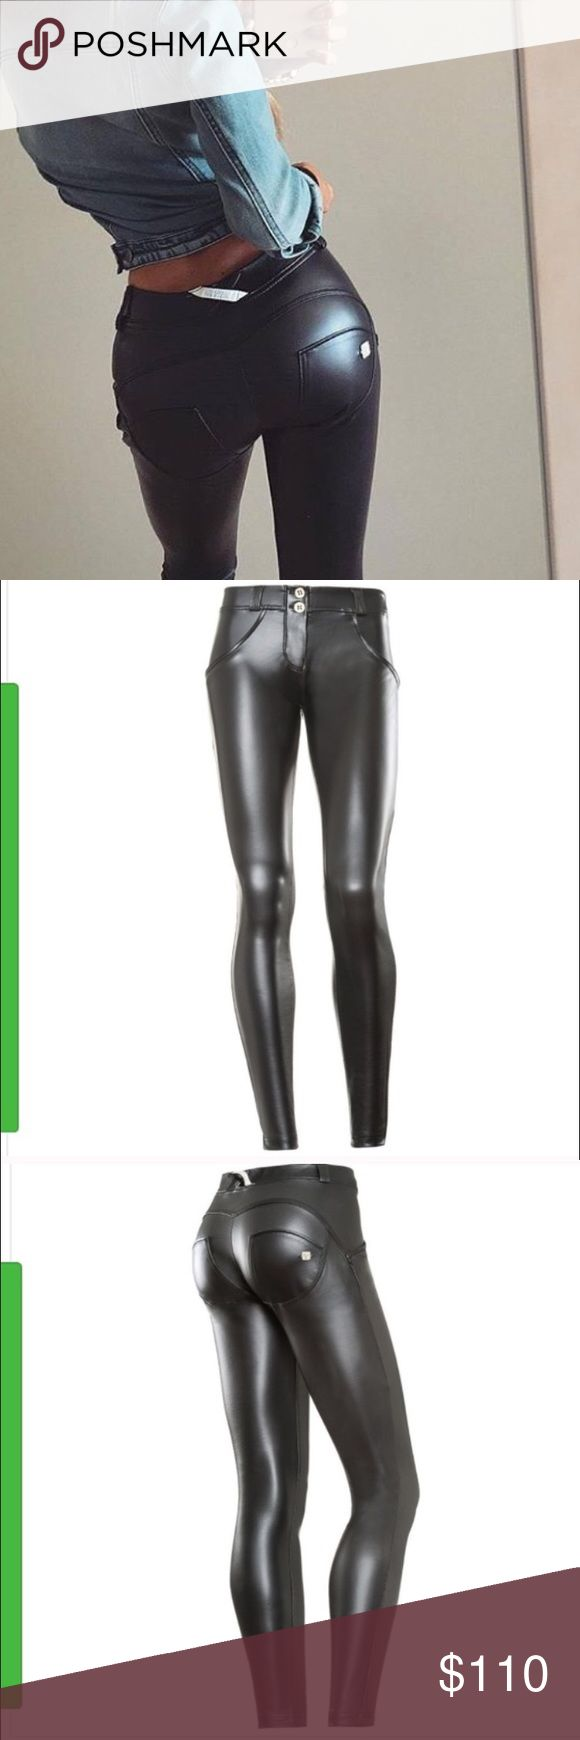 New Freddy store WR up leather black pants Small Brand new with tags. Famous Freddy Store WR Up shaping black leather effect skinny pants. Size Small. Beautiful pebbled leather pants. With shaping and lifting effect. Size Small. Fits amazingly. So stretchy. All sold out on the website Freddy Pants Skinny